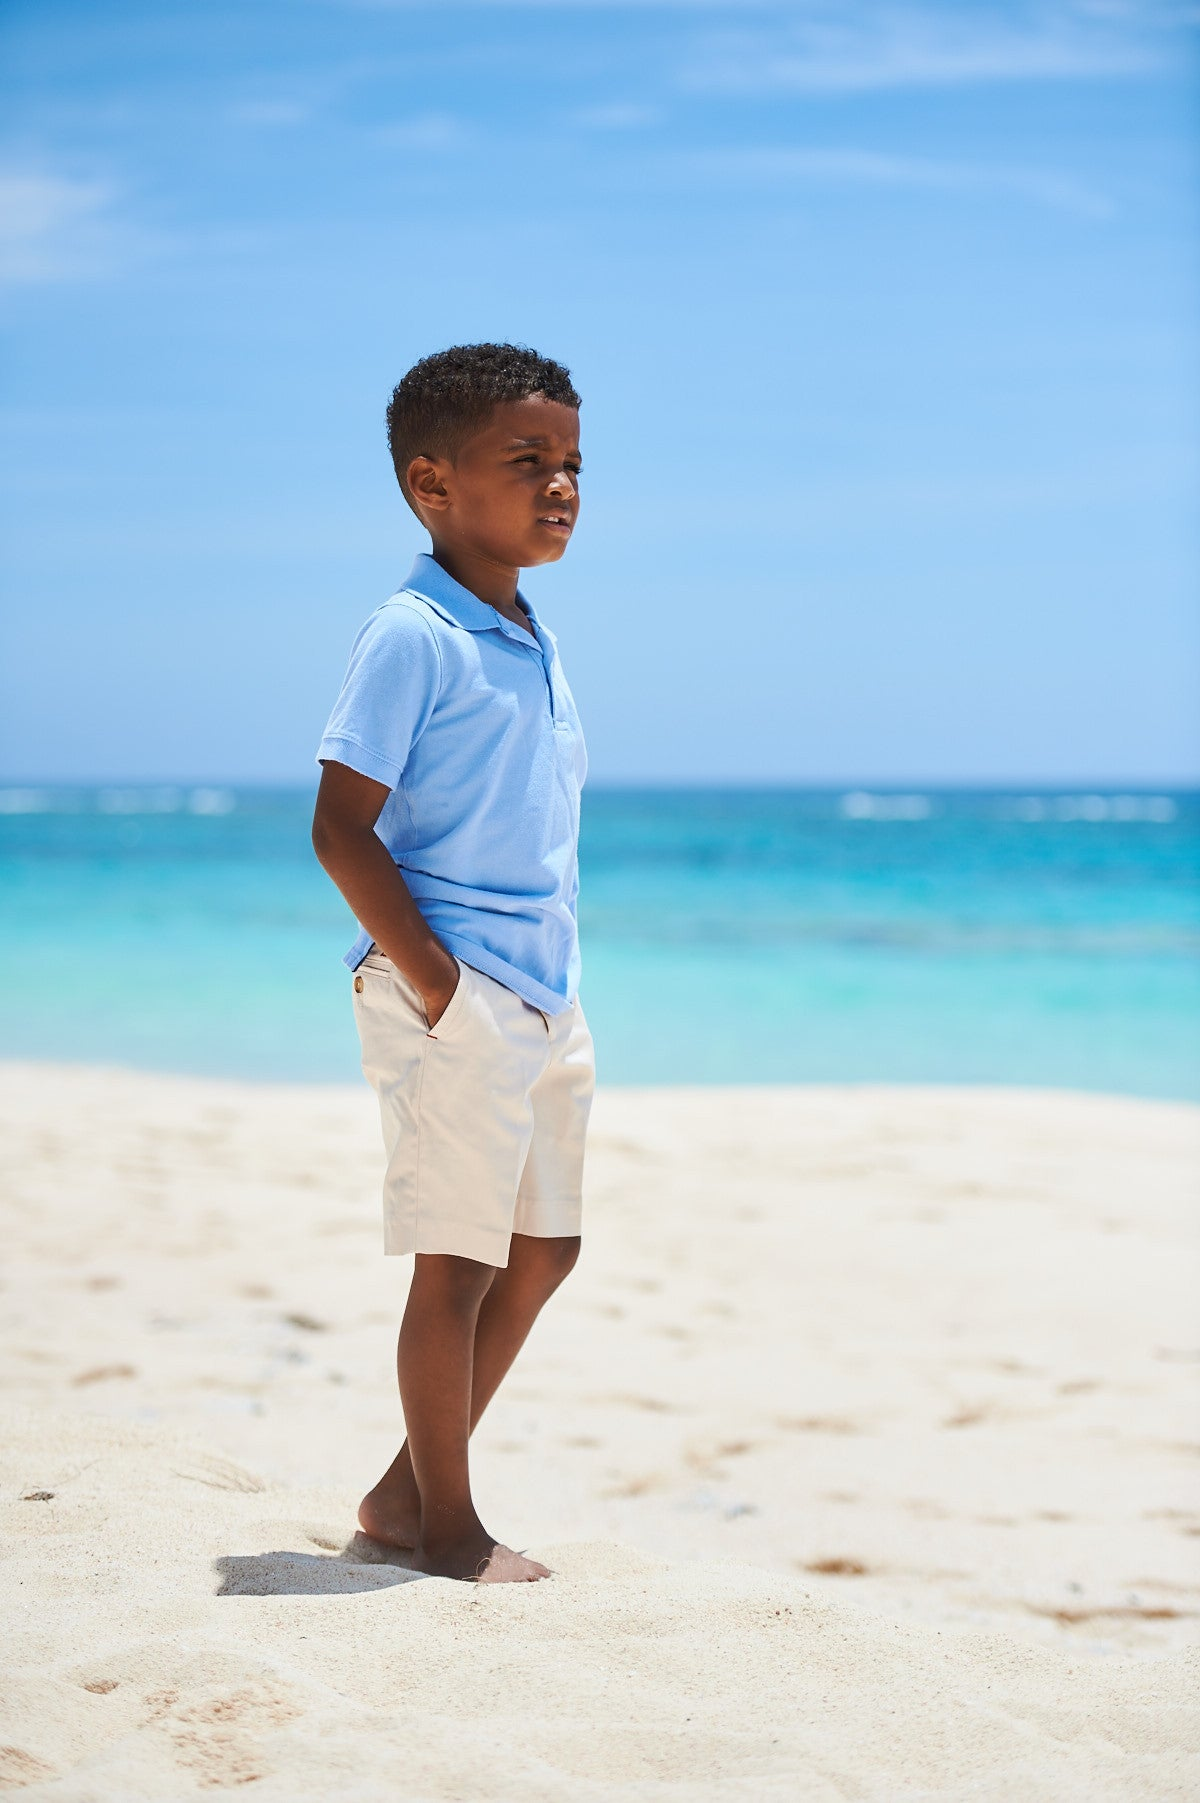 Bermuda Shorts for Kids